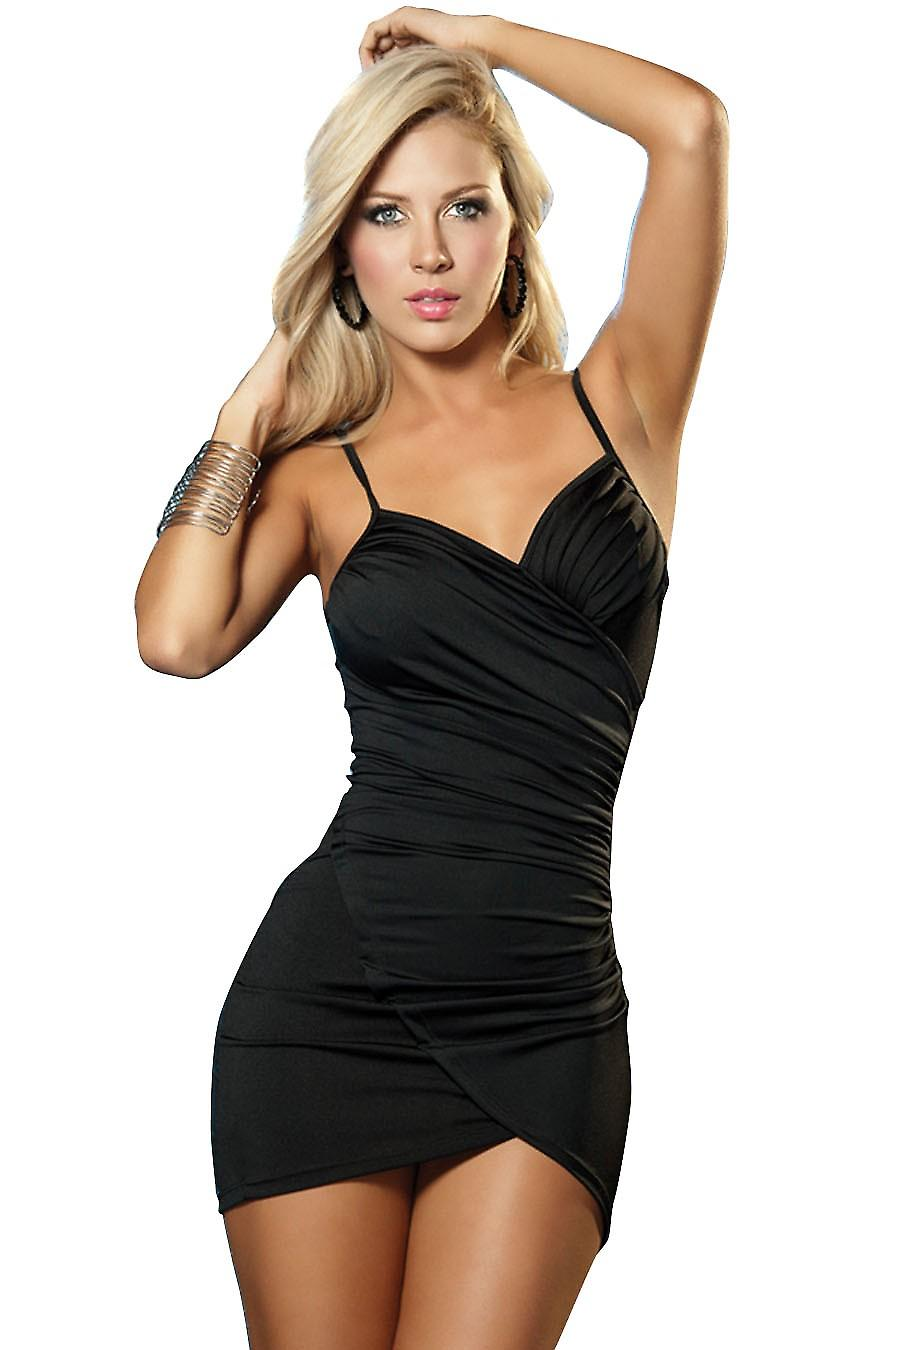 Waooh - Sexy Fashion - Kleid Slinky Club, Sexy